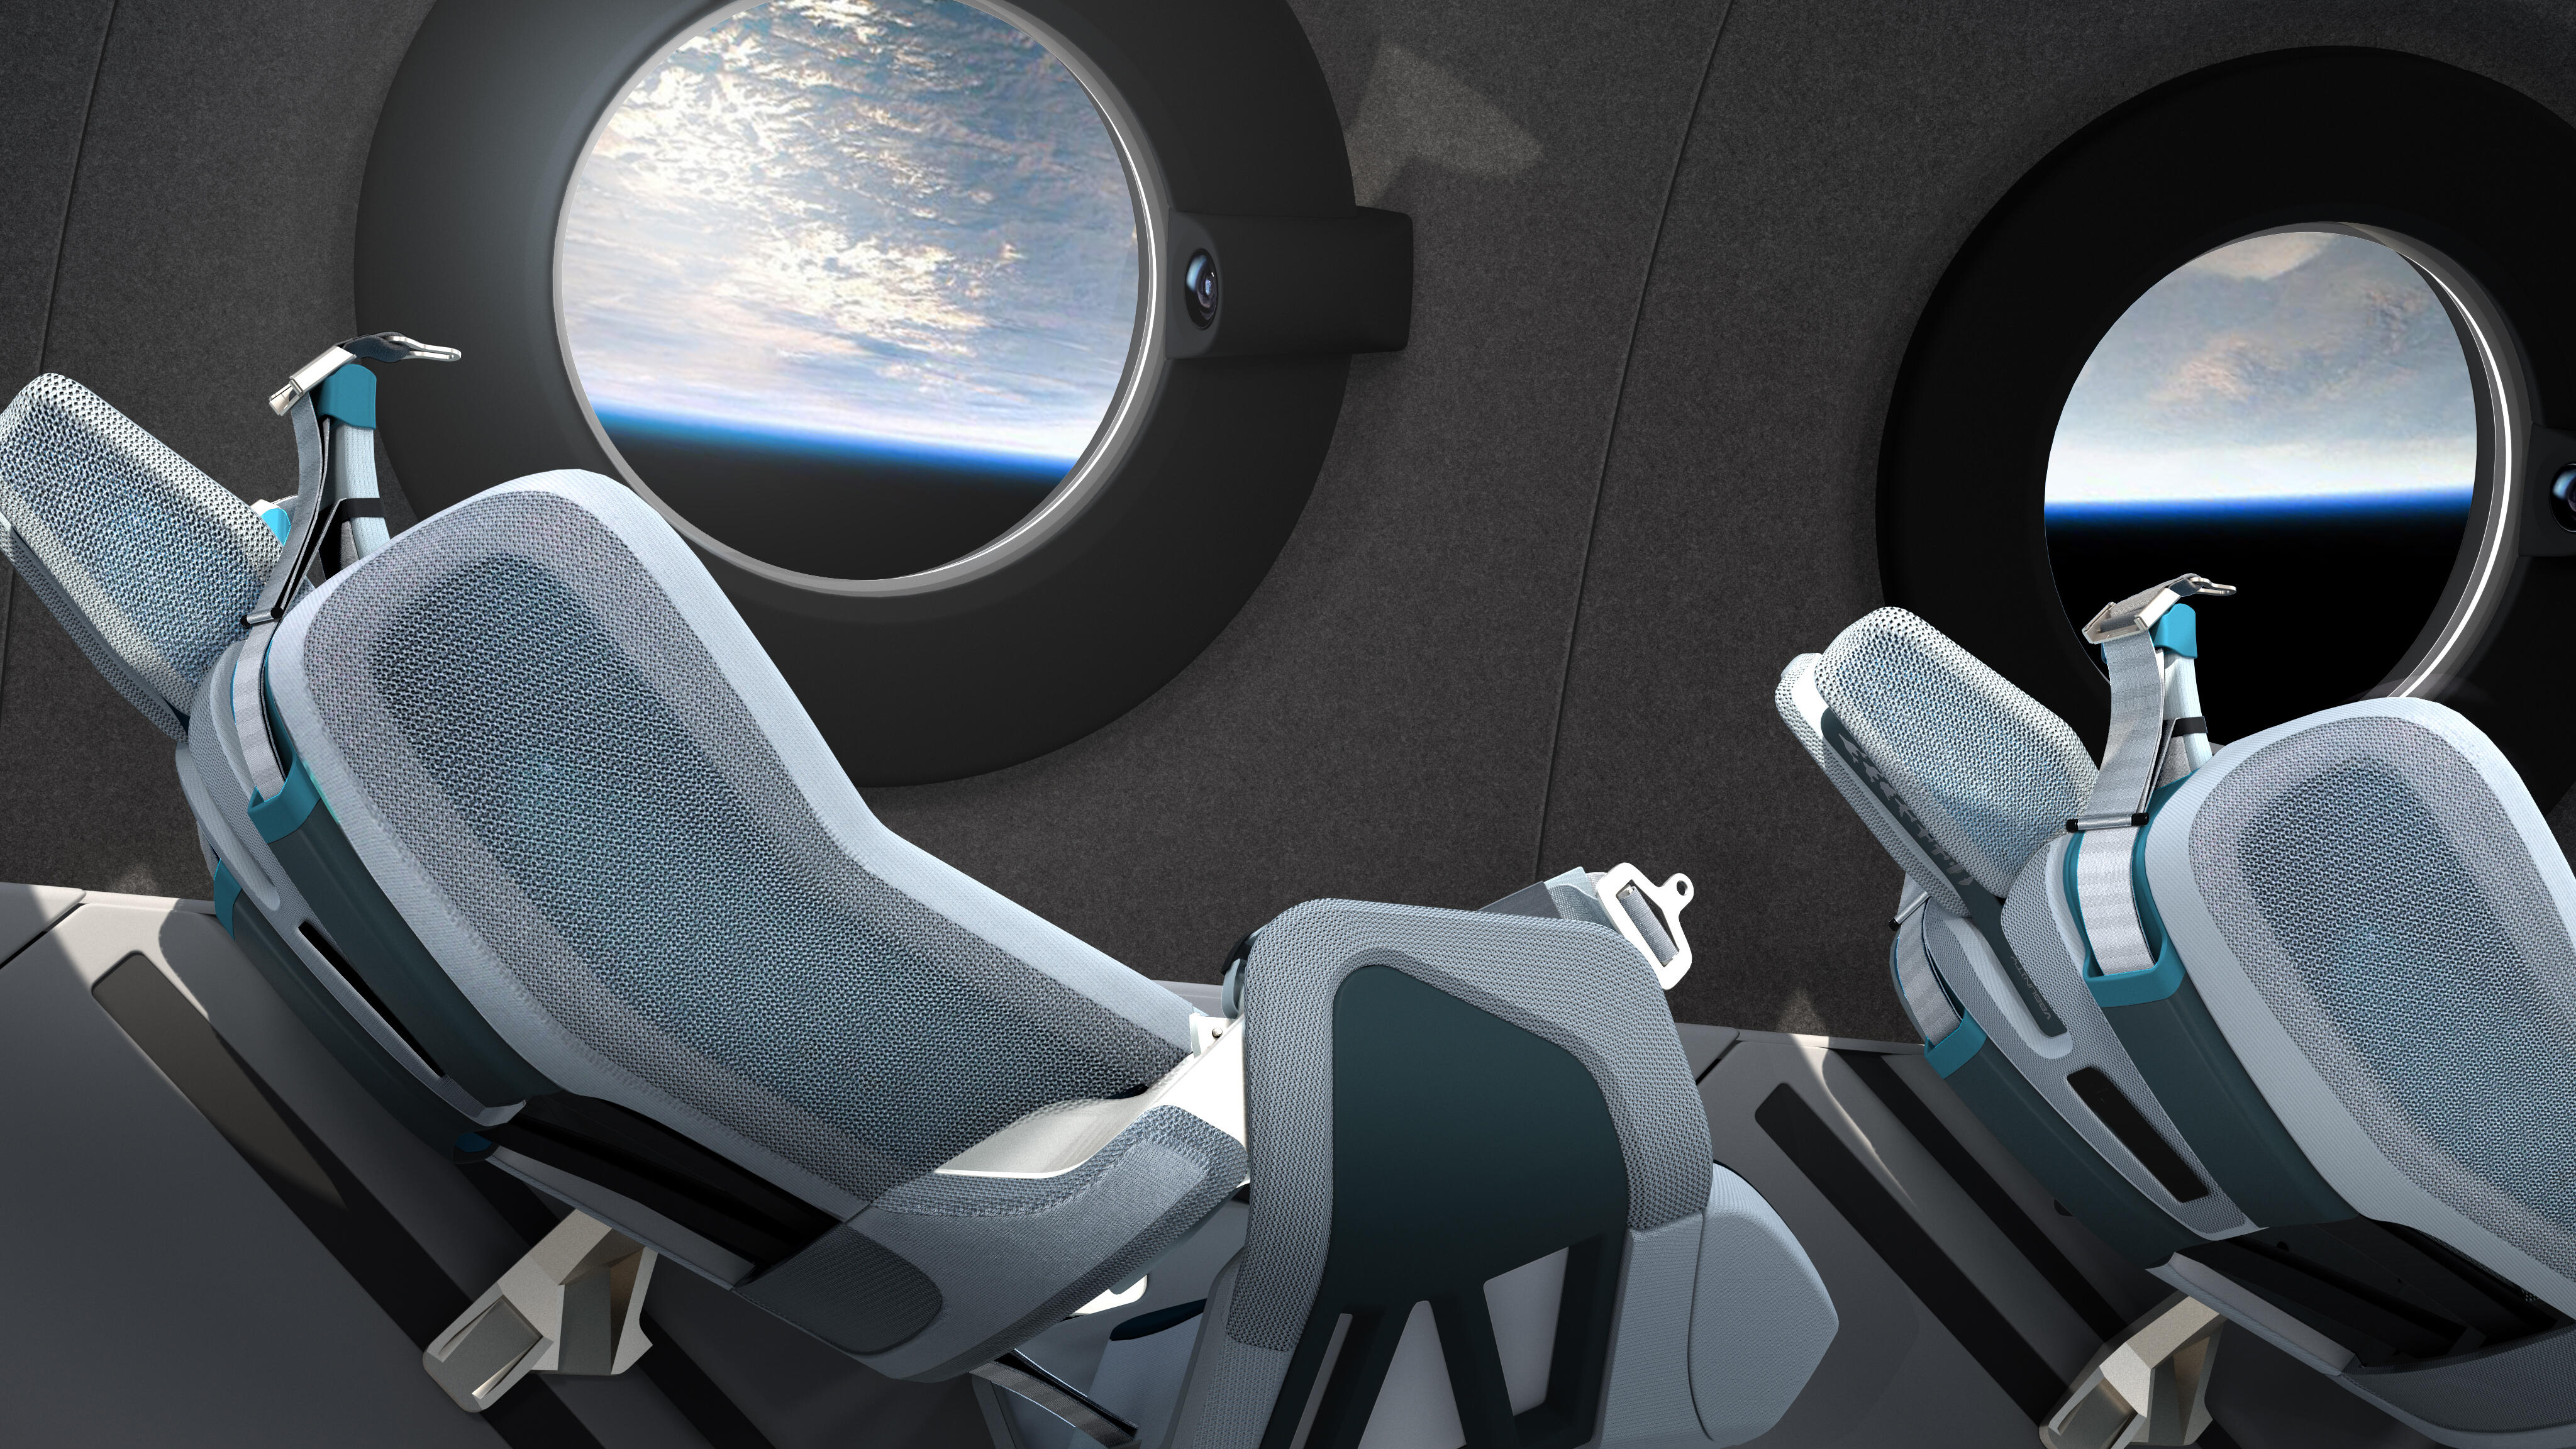 virgin-galactic-spaceship-seats-in-space